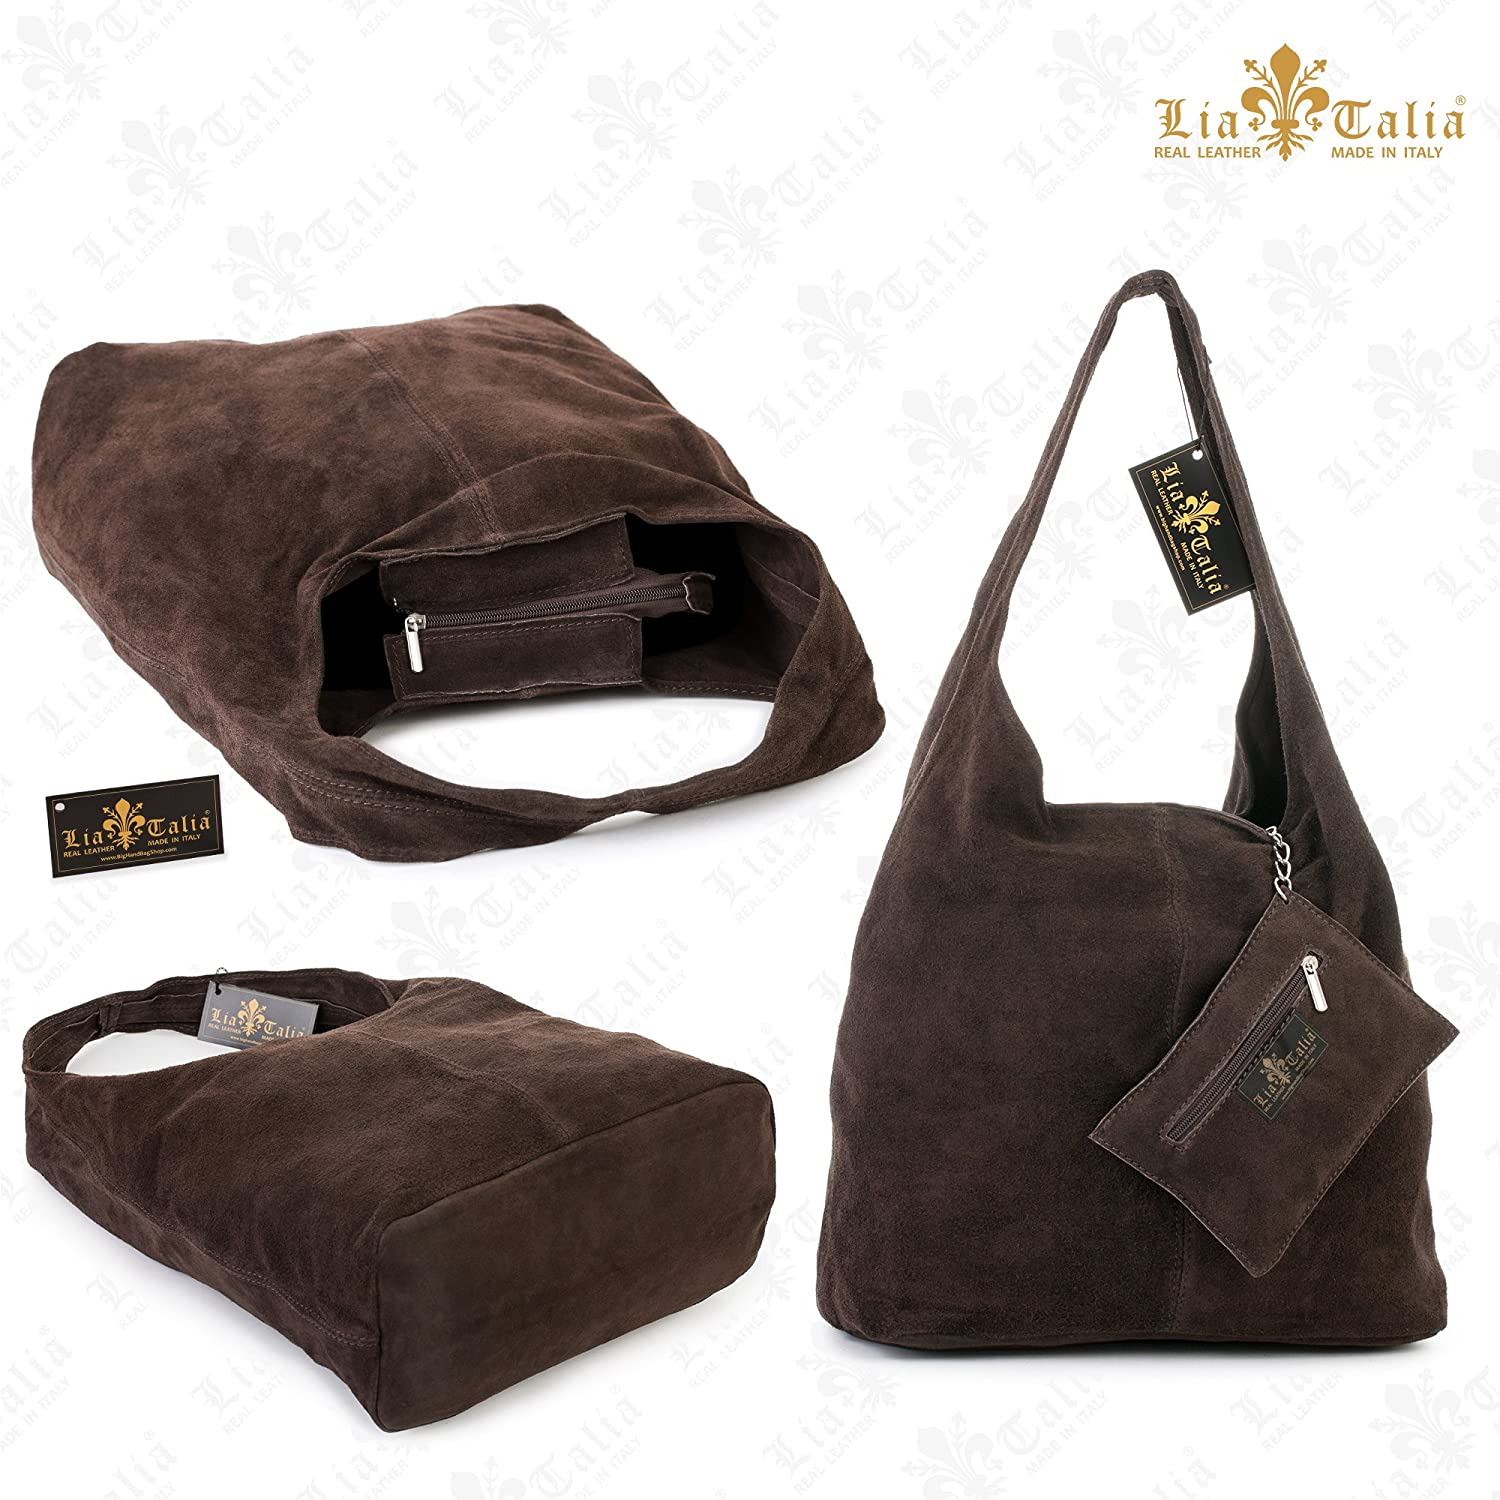 Womens Italian Real Suede Leather Small Shoulder Bag 3 Compartments Tote Handbag